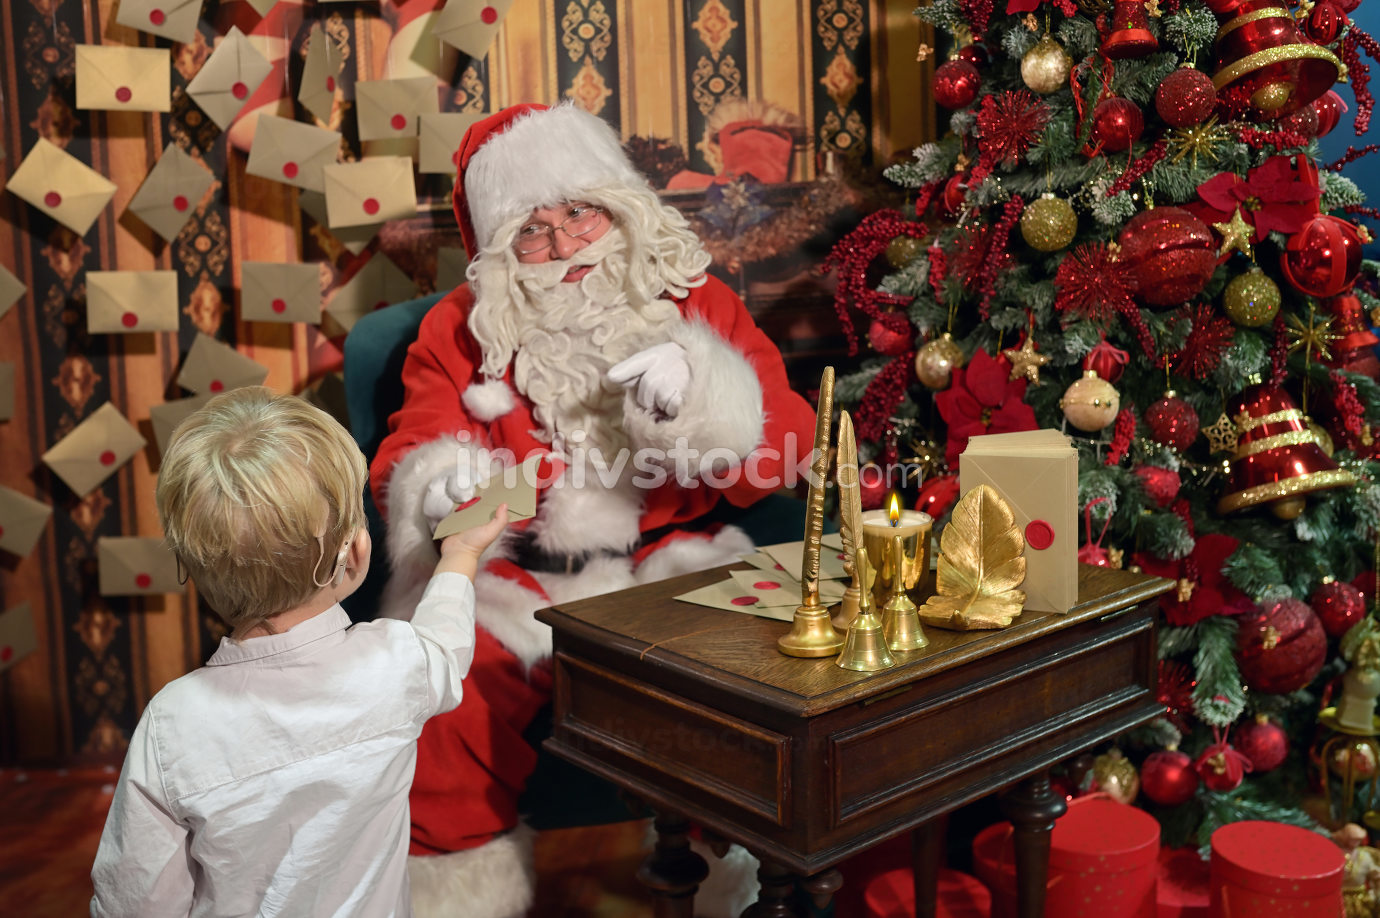 A Boy with Cochlear Implants and Santa Claus